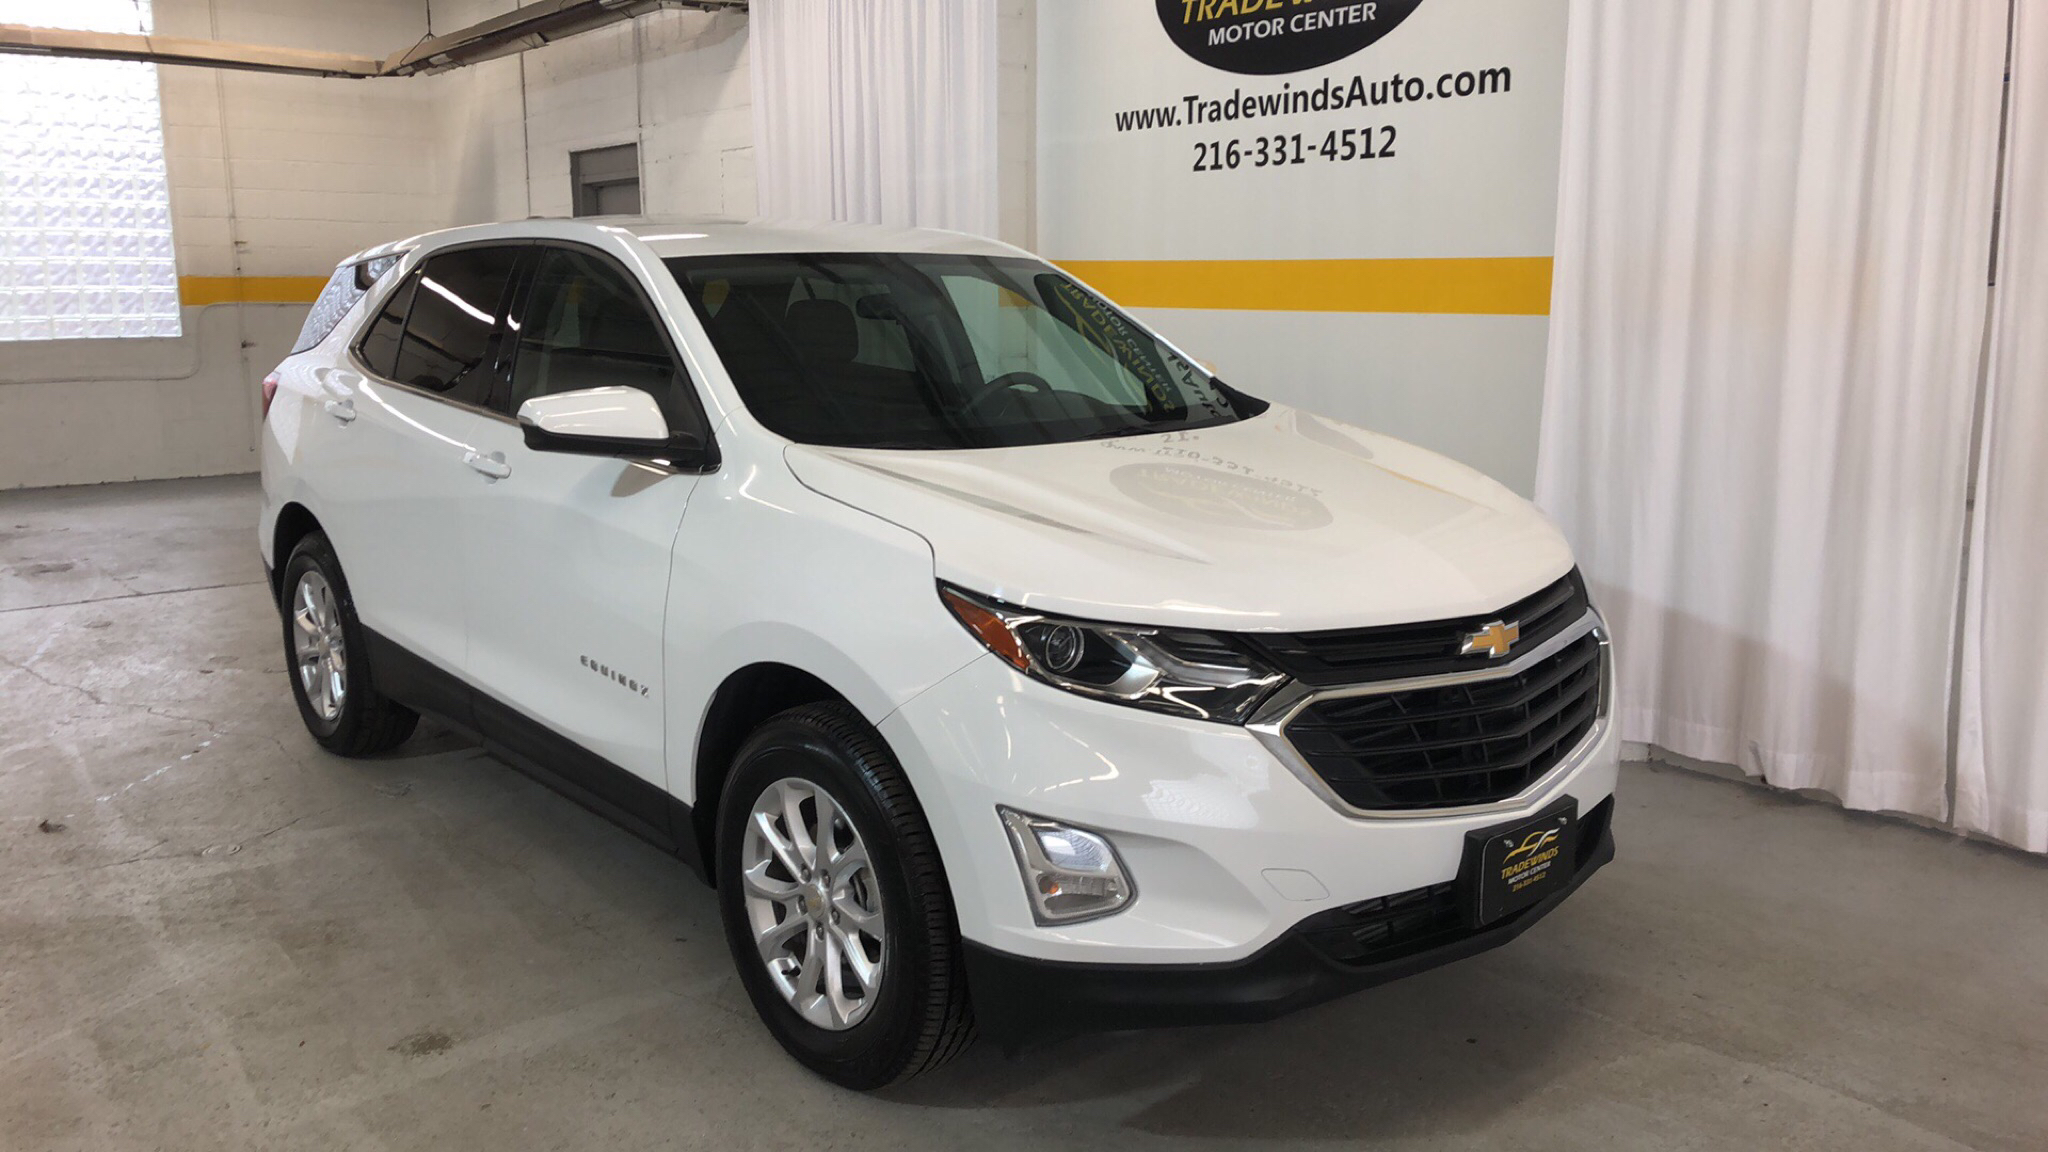 2018 CHEVROLET EQUINOX LT for sale at Tradewinds Motor Center